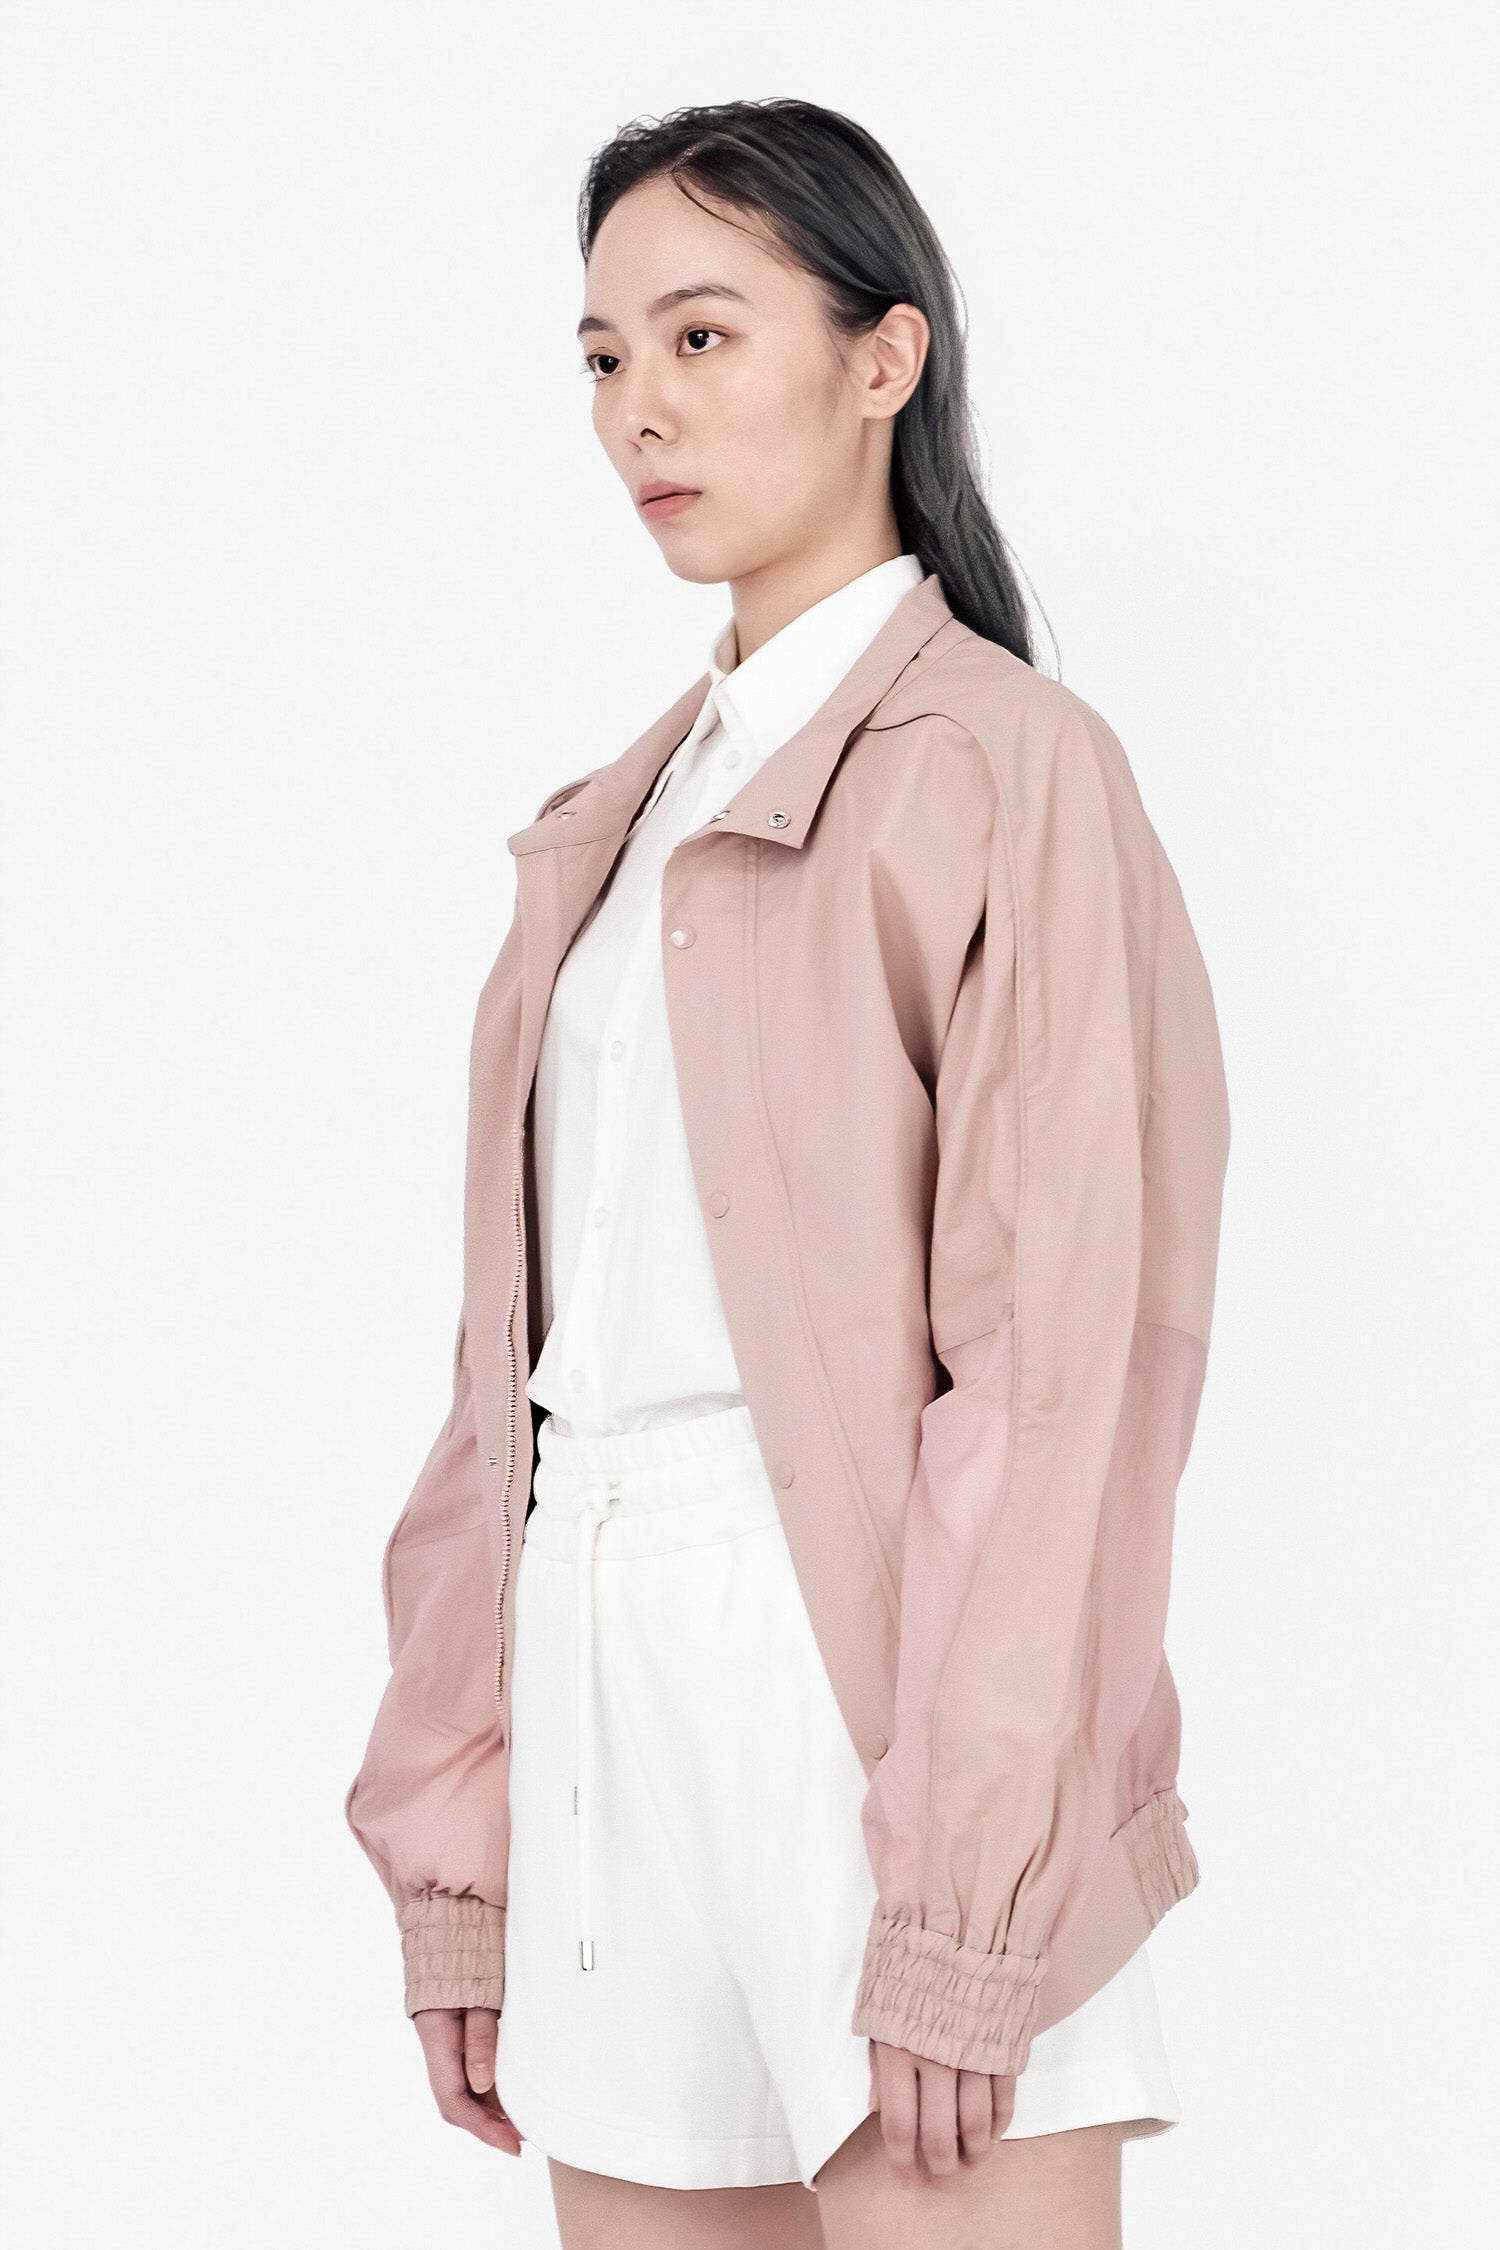 SEANNUNG - 藕粉色異材質拼接夾克 Mixed Material Bomber Jacket in Lotus Color - Woman